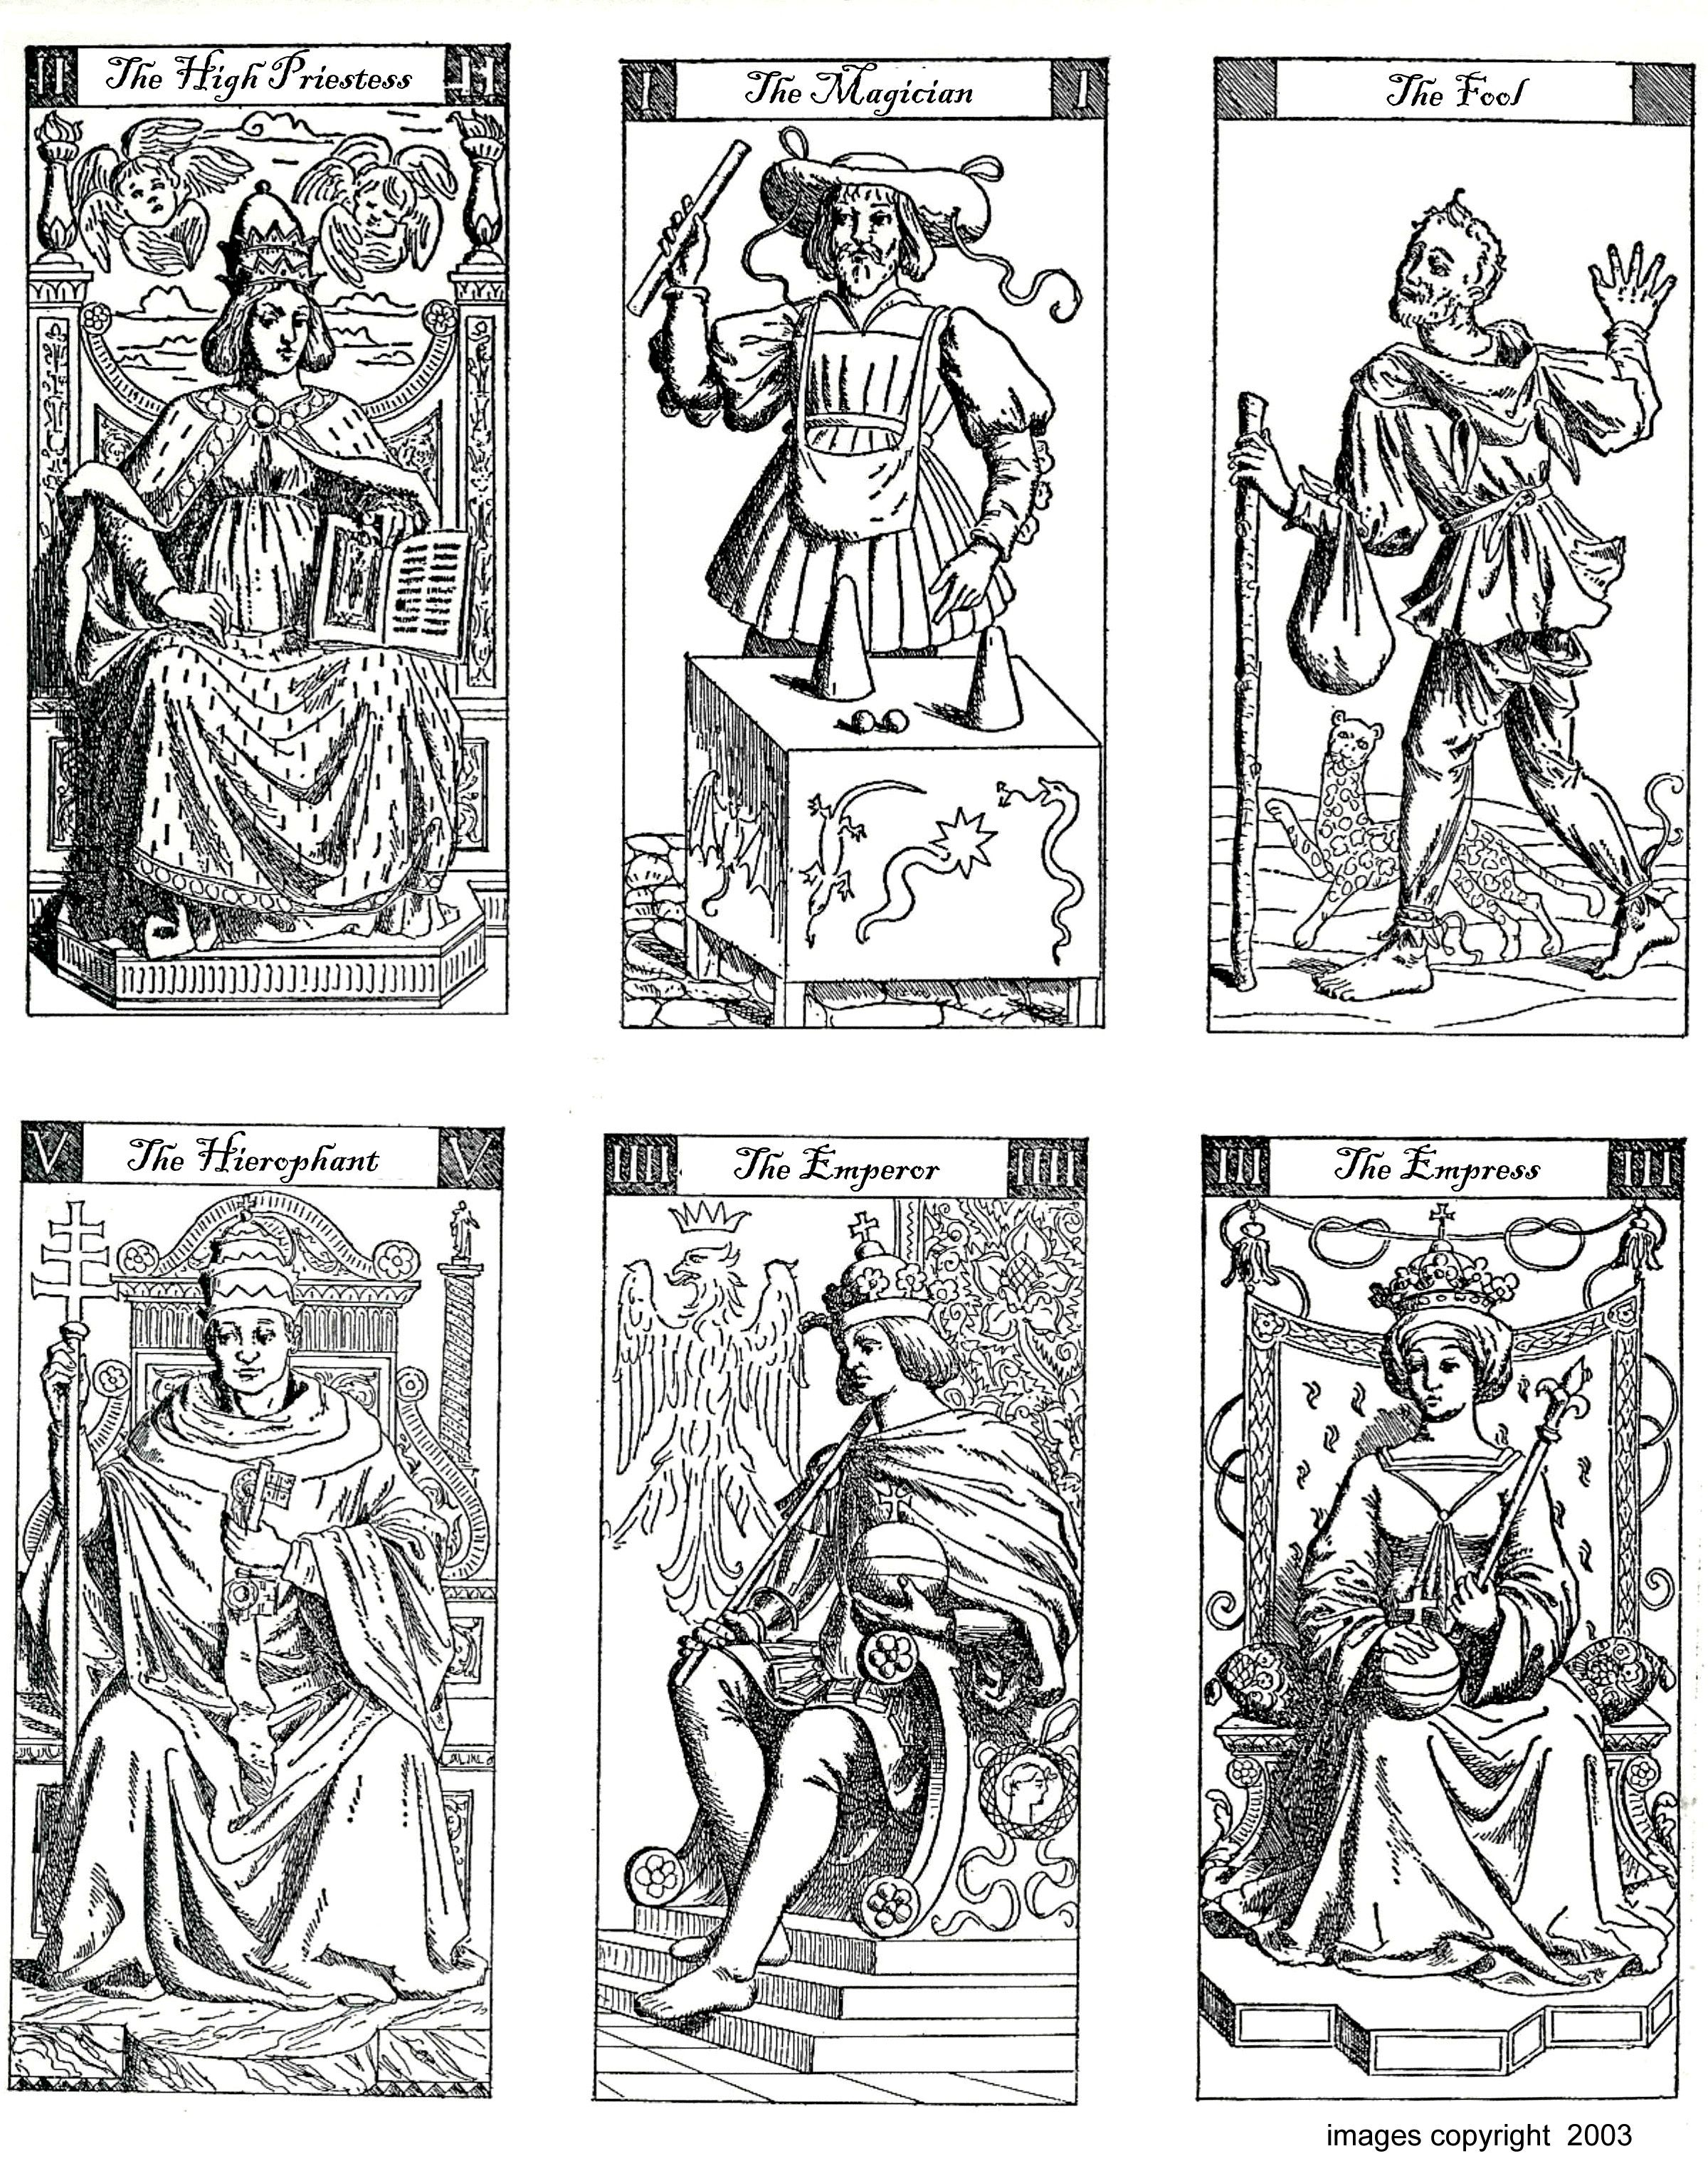 Gargantuan image for free printable tarot cards pdf